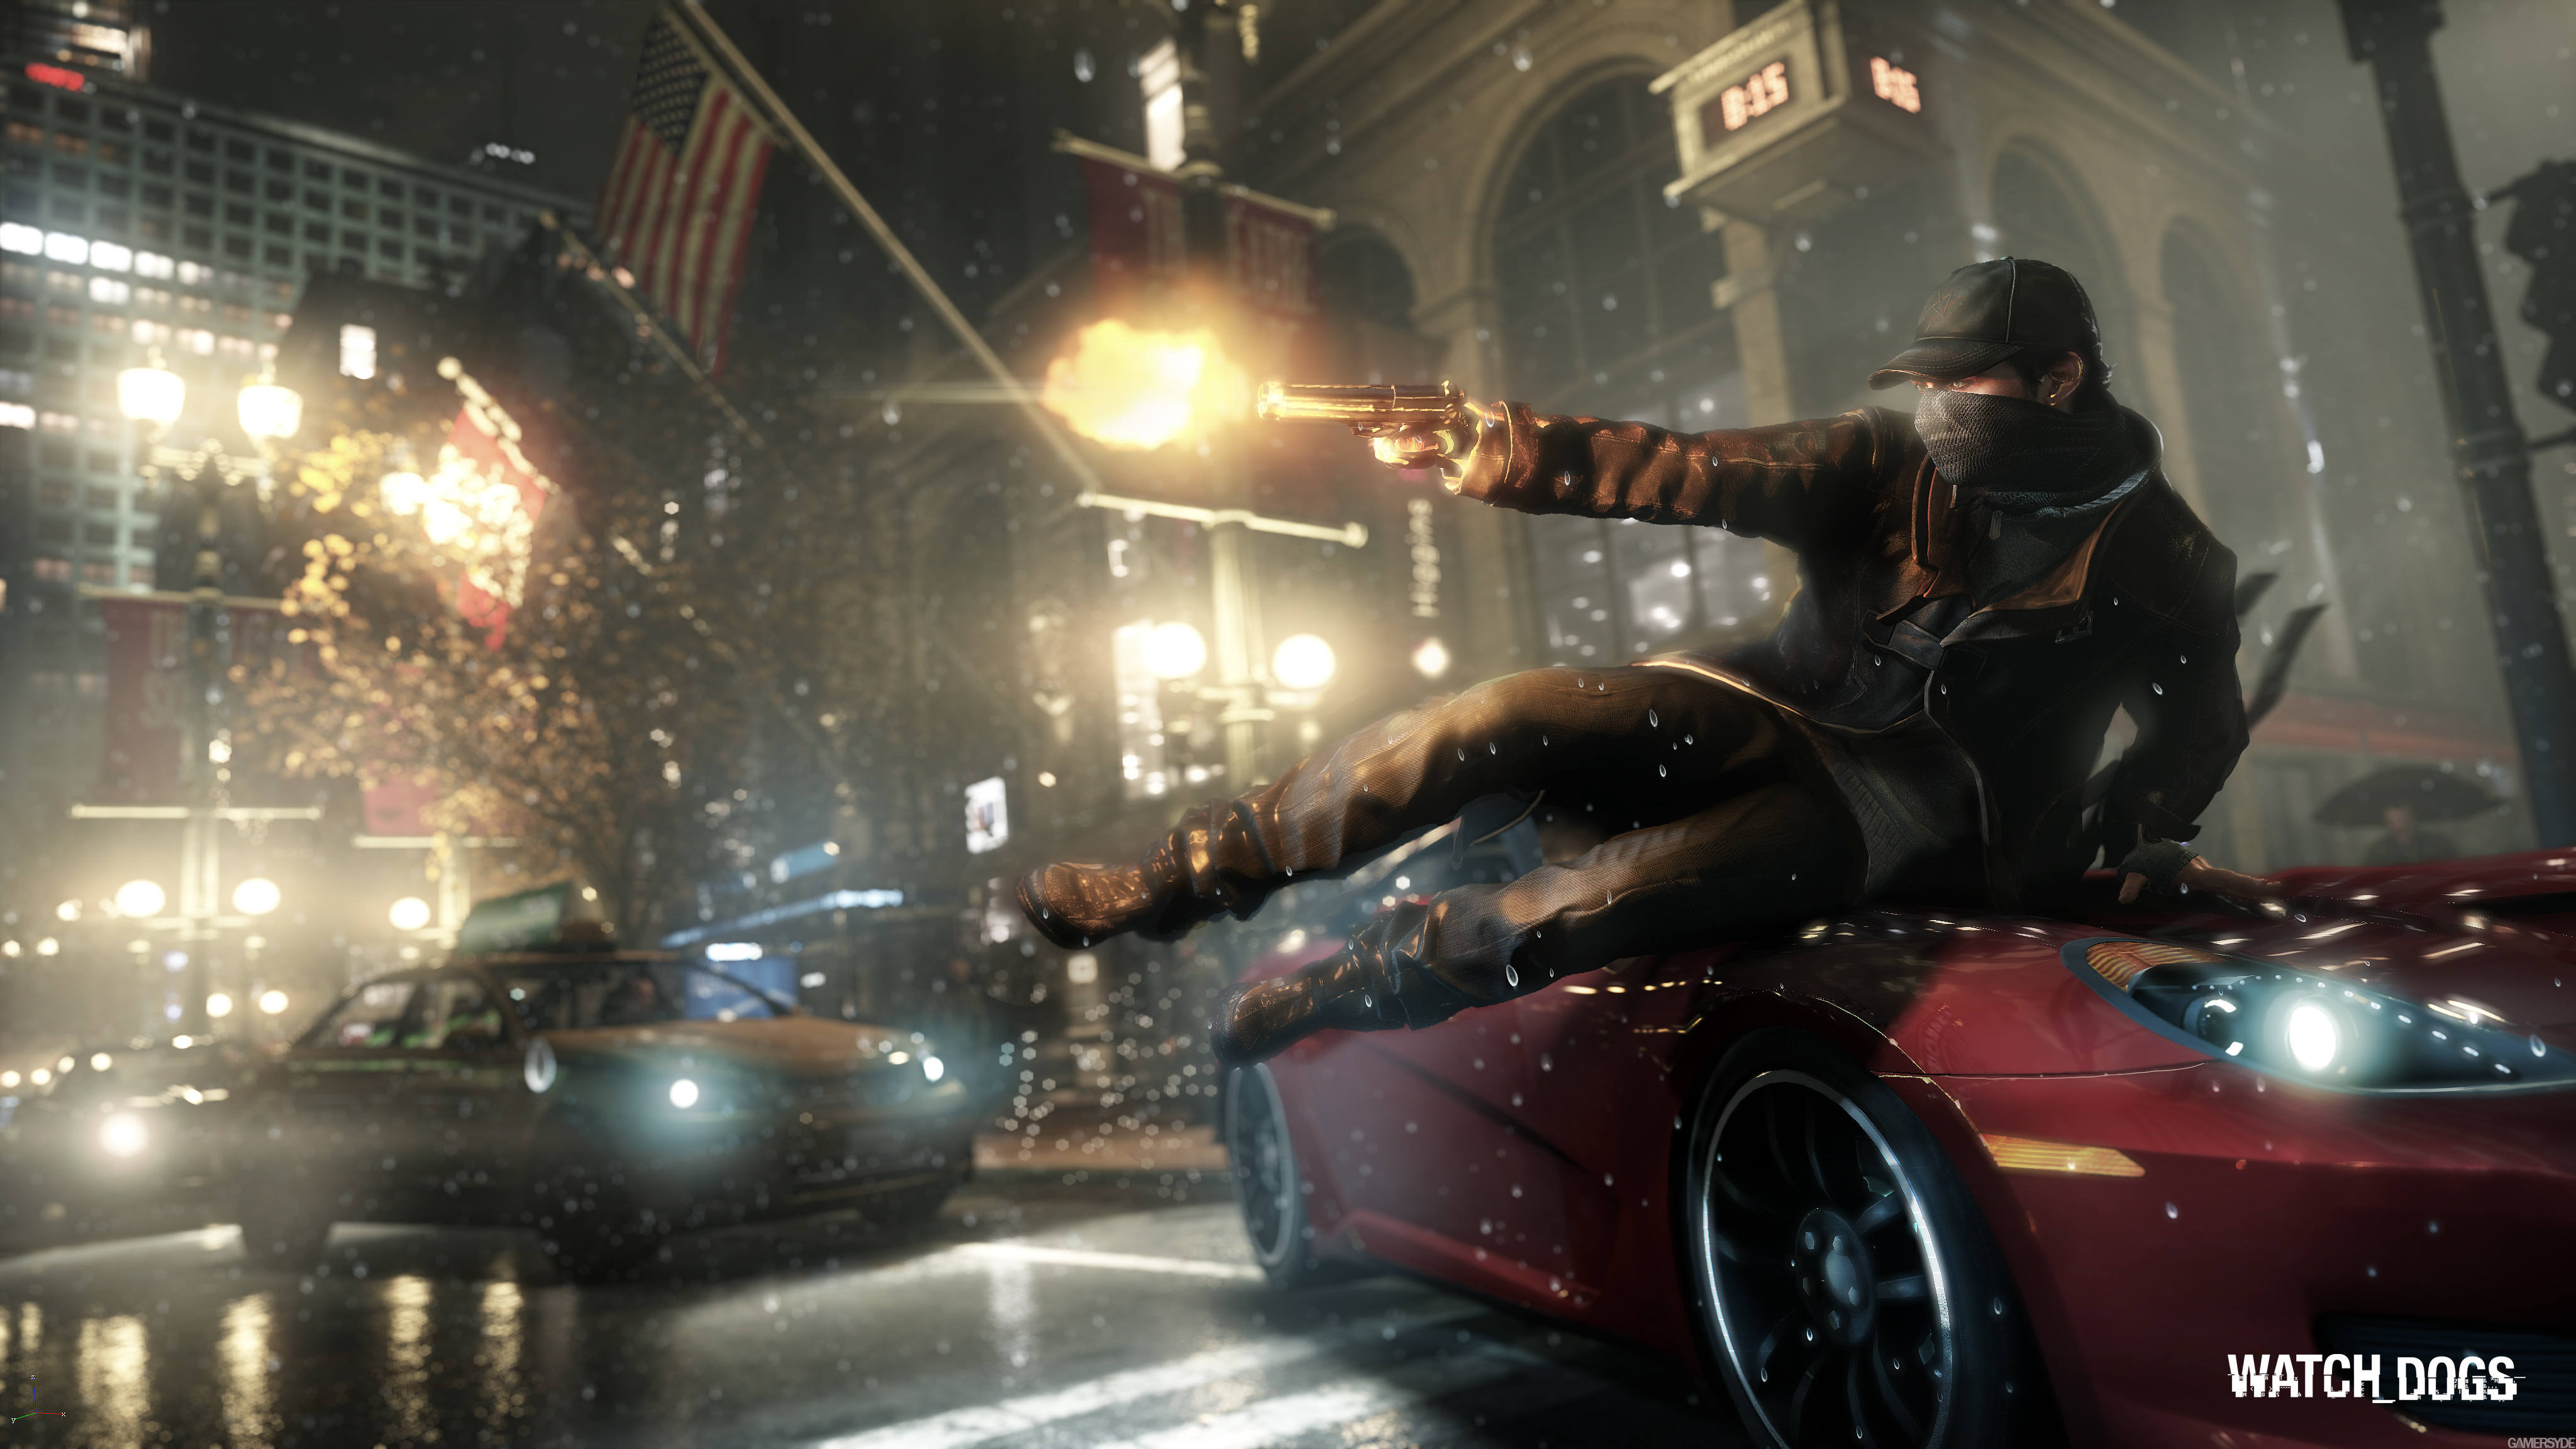 http://www.culture-games.com/wp-content/uploads//watch-dogs-2.jpg